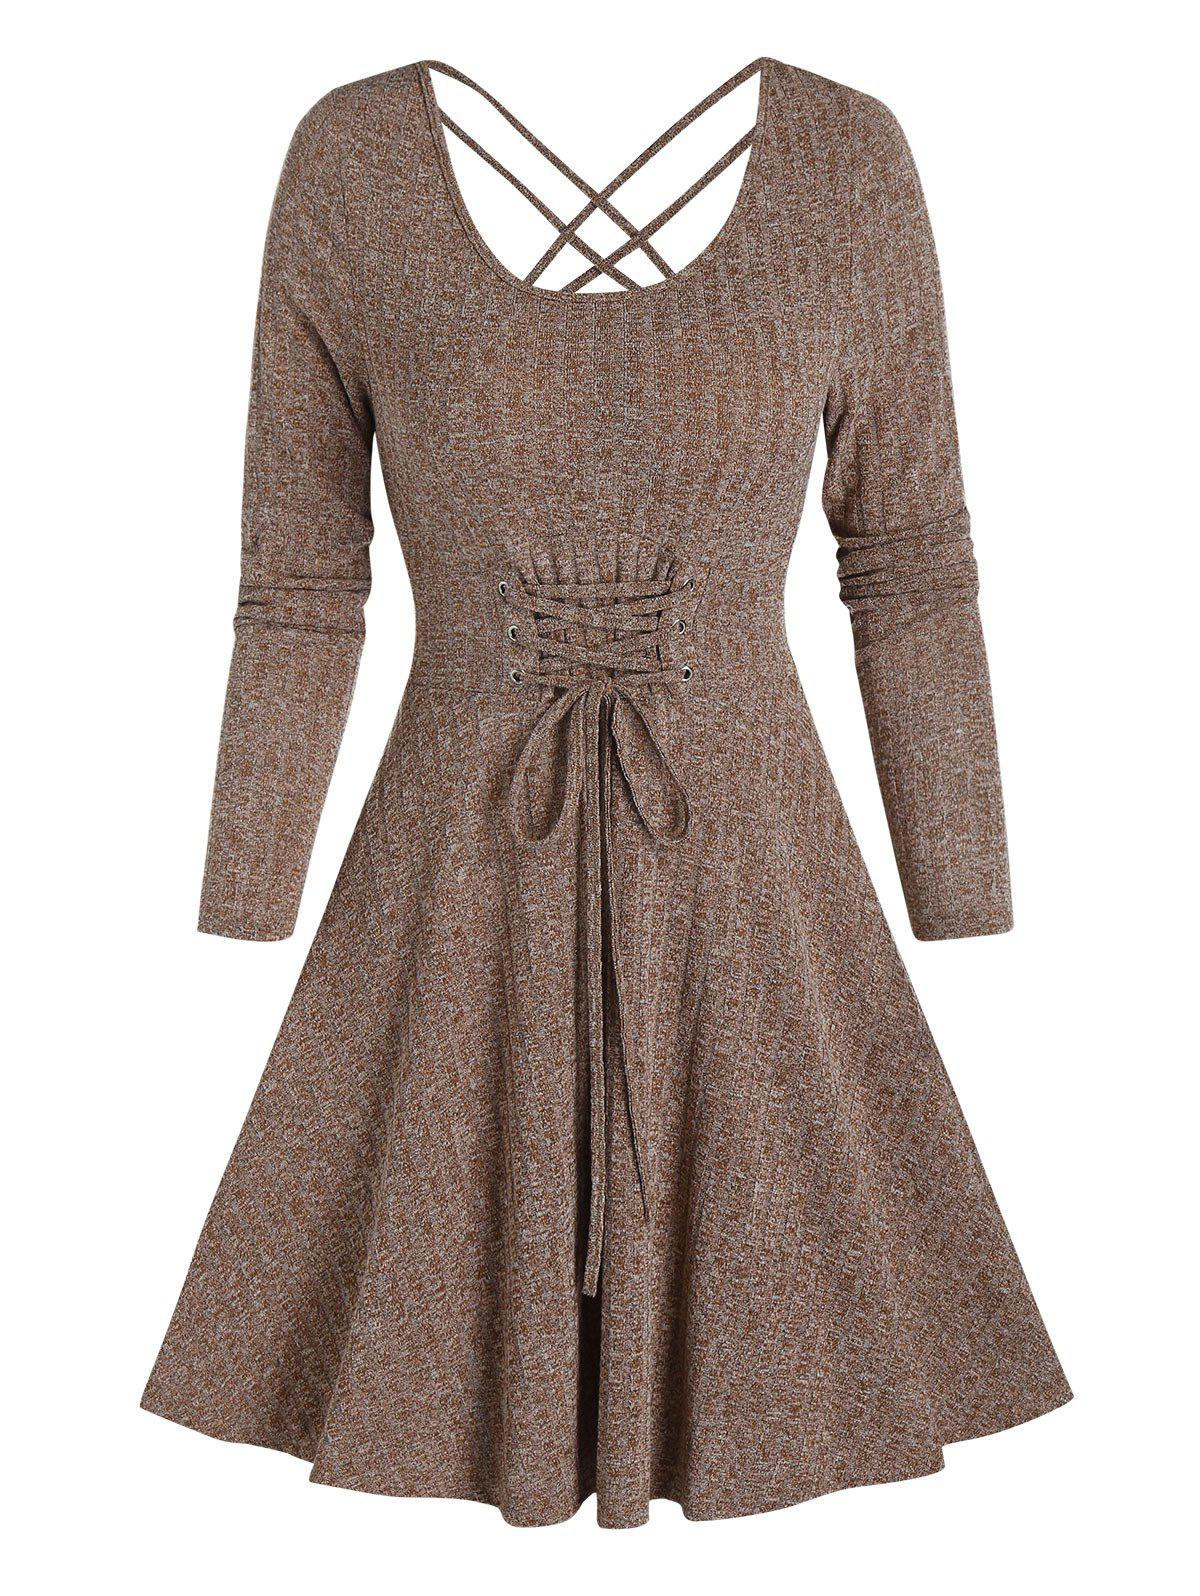 Lace-up Front Heathered Ribbed Dress - COFFEE L